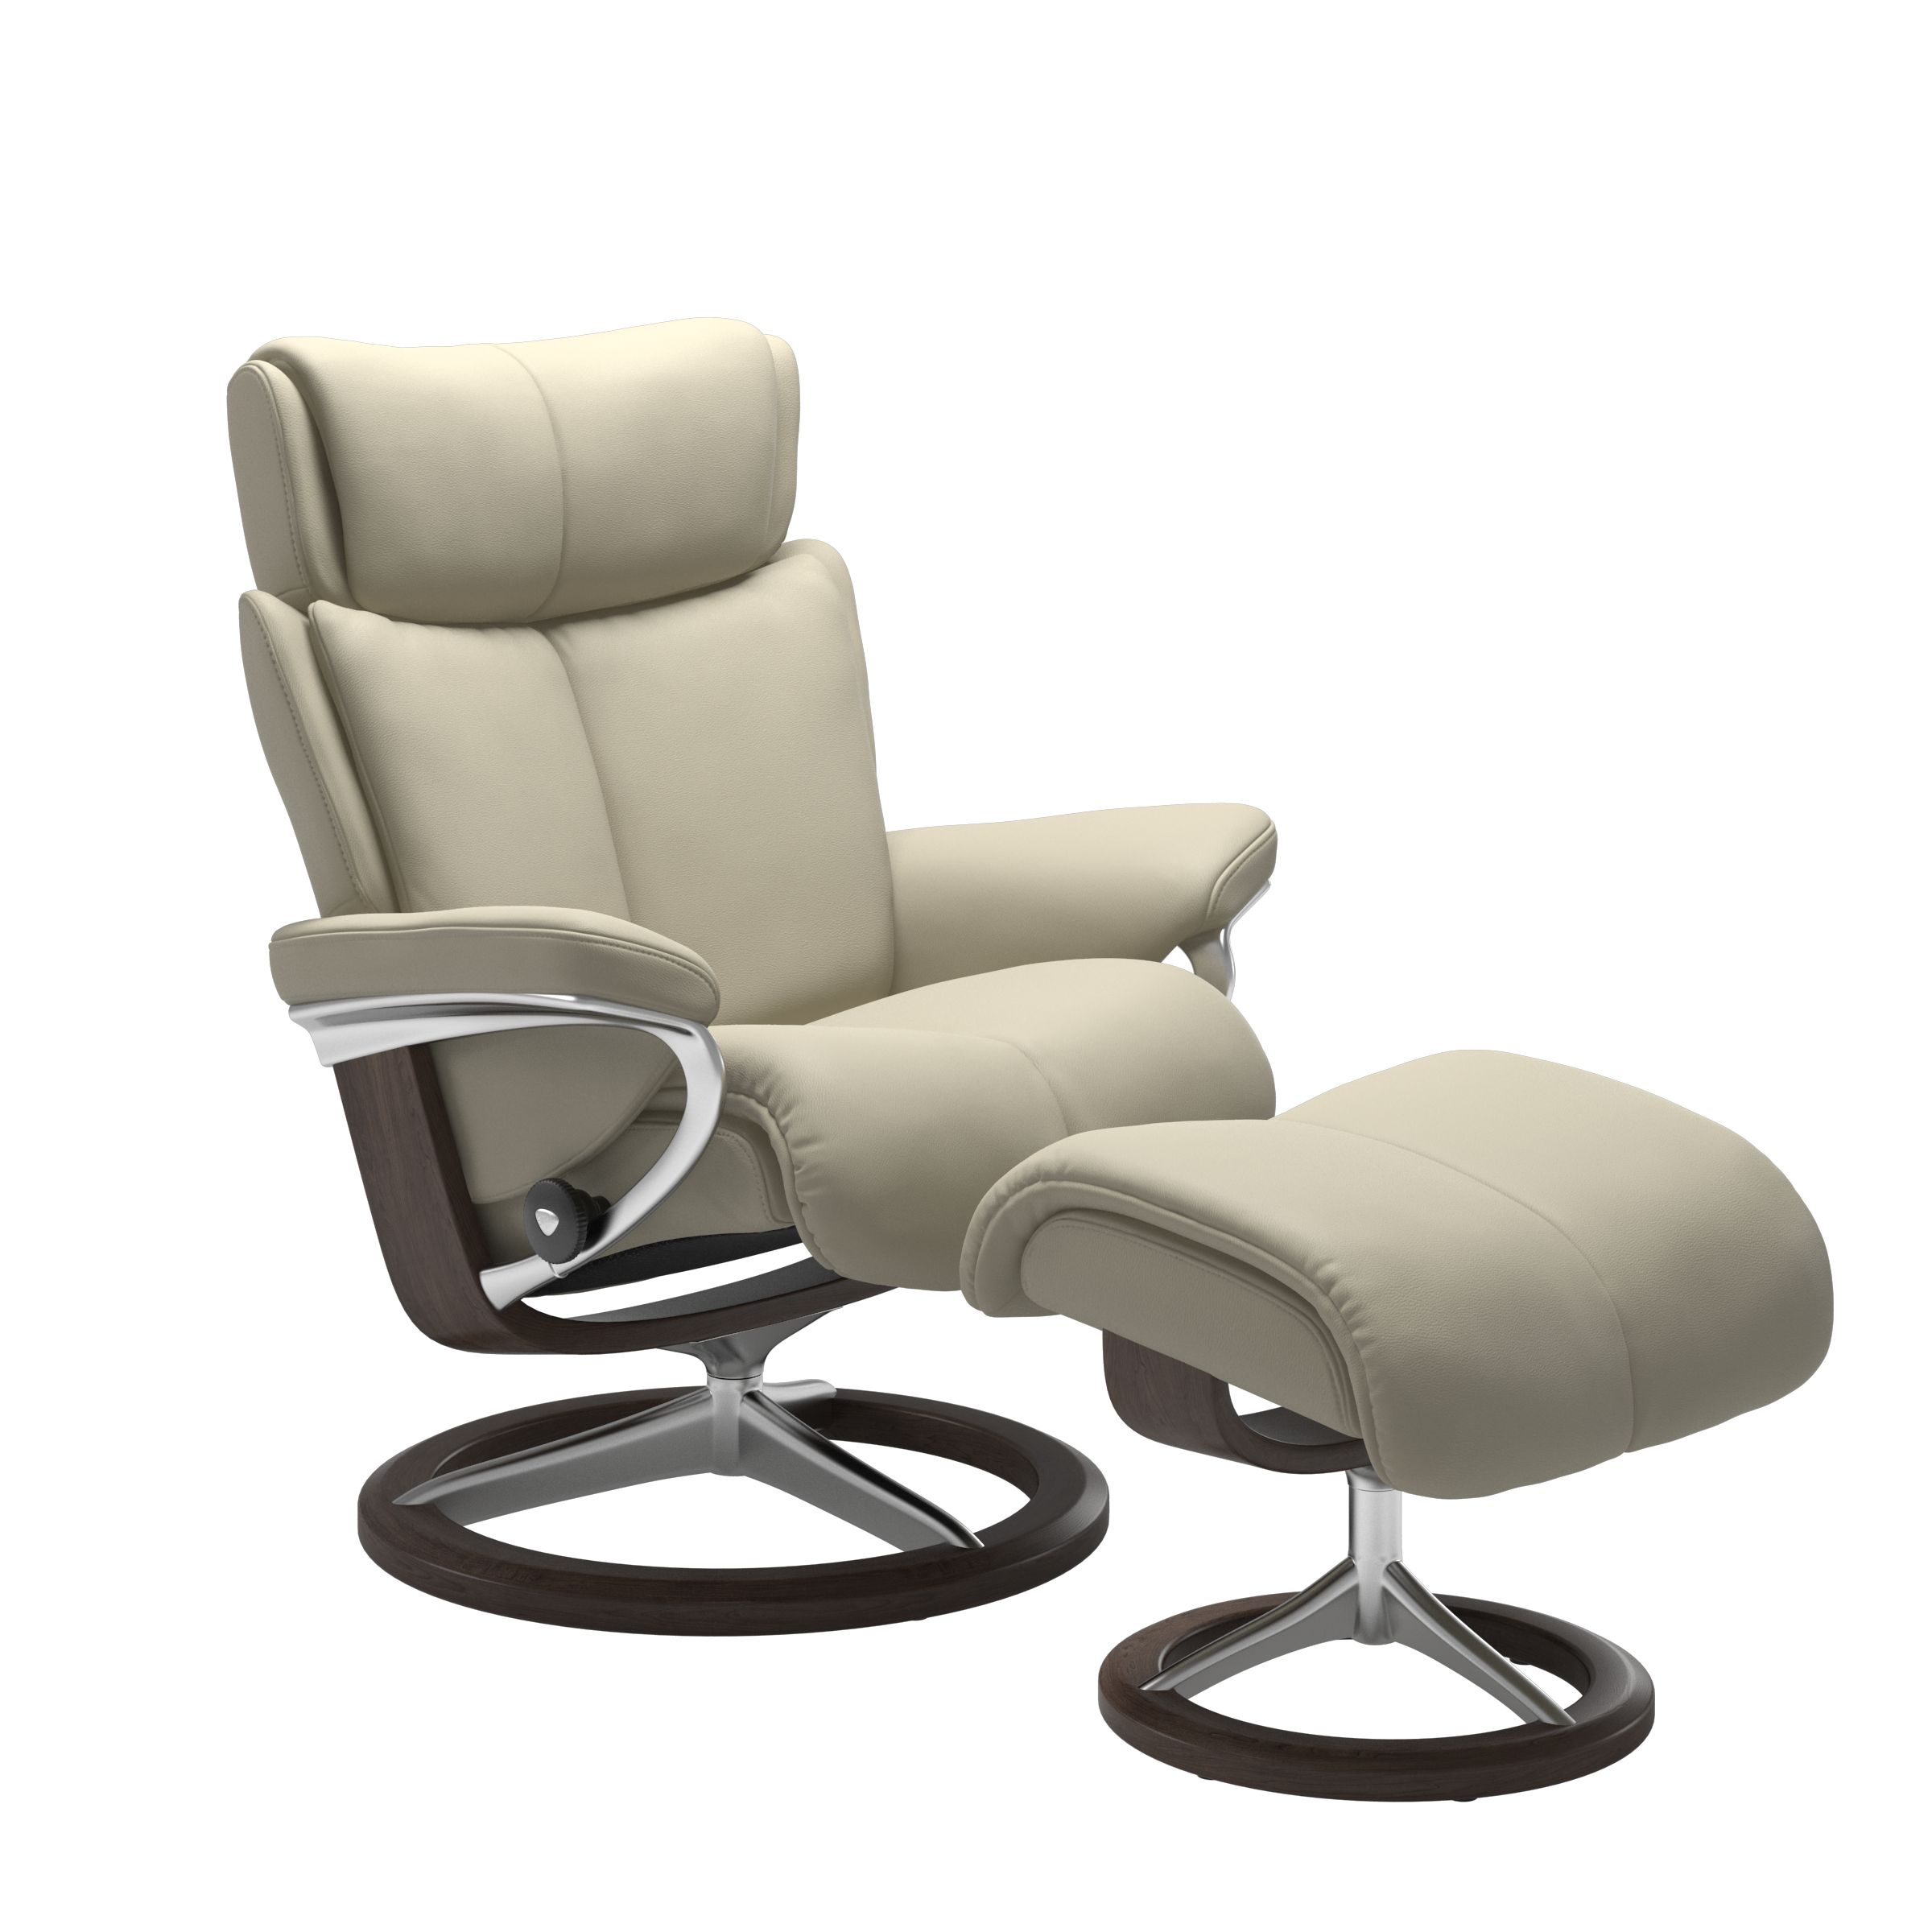 Sessel Stressless Preise Magic Sessel Mit Schlaffunktion Stressless Relaxsessel